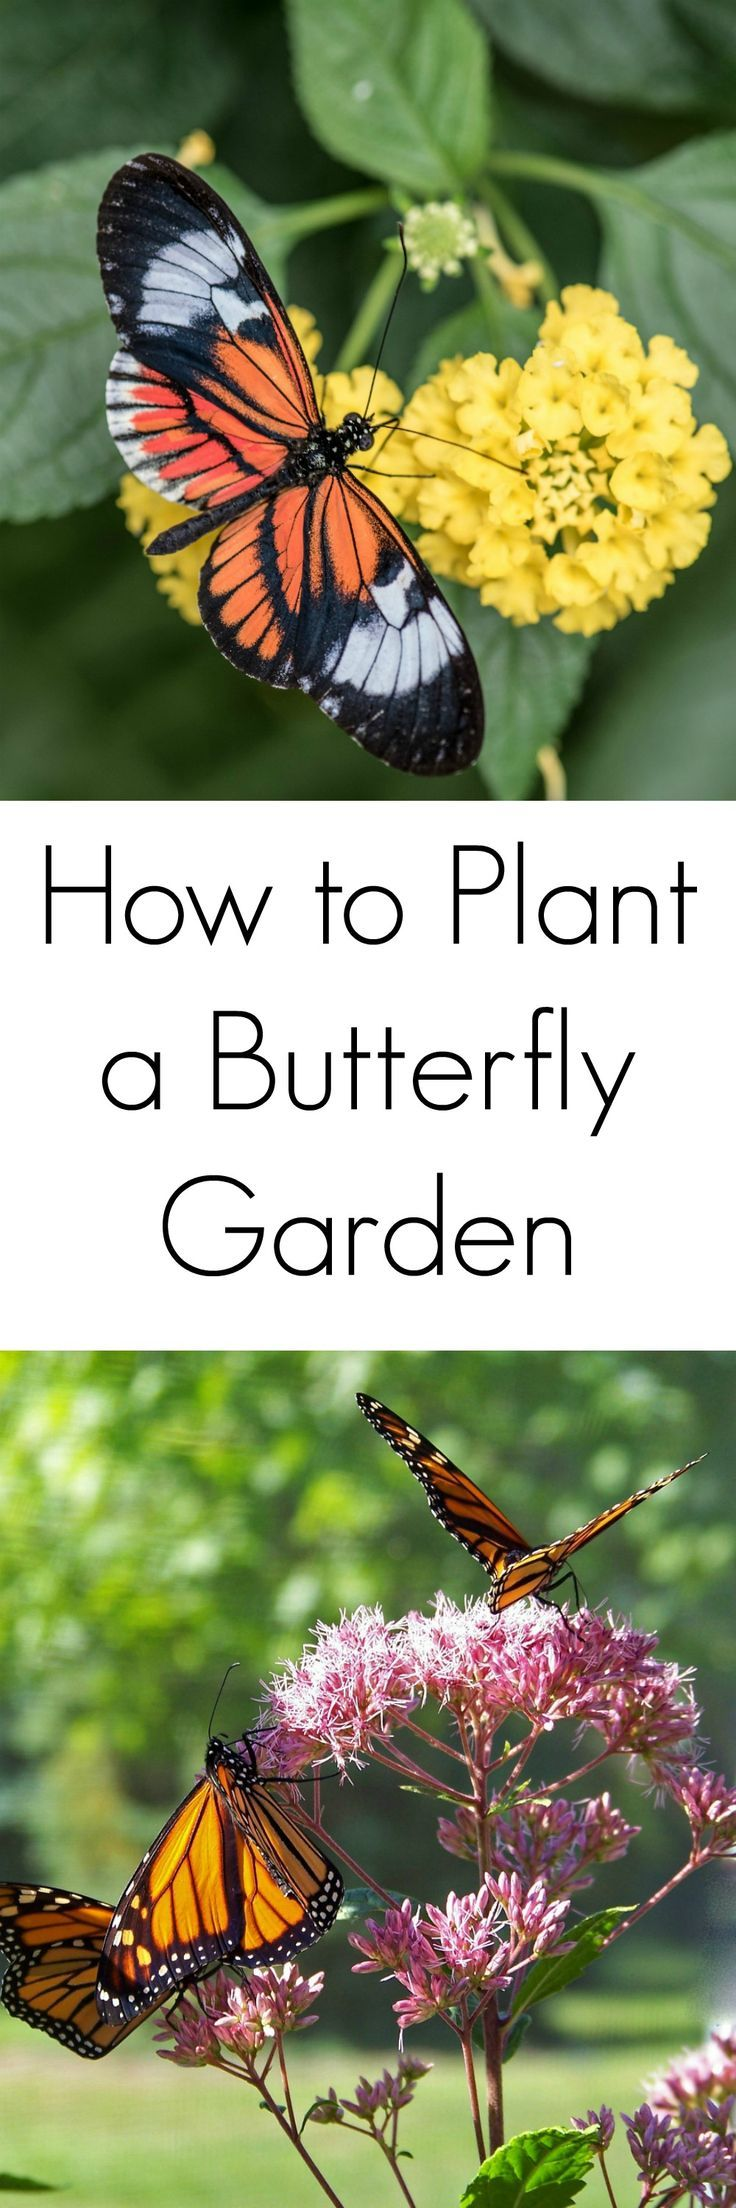 Butterfly Garden Ideas butterfly gardening easy home decorating ideas Tips For Planting A Butterfly Garden